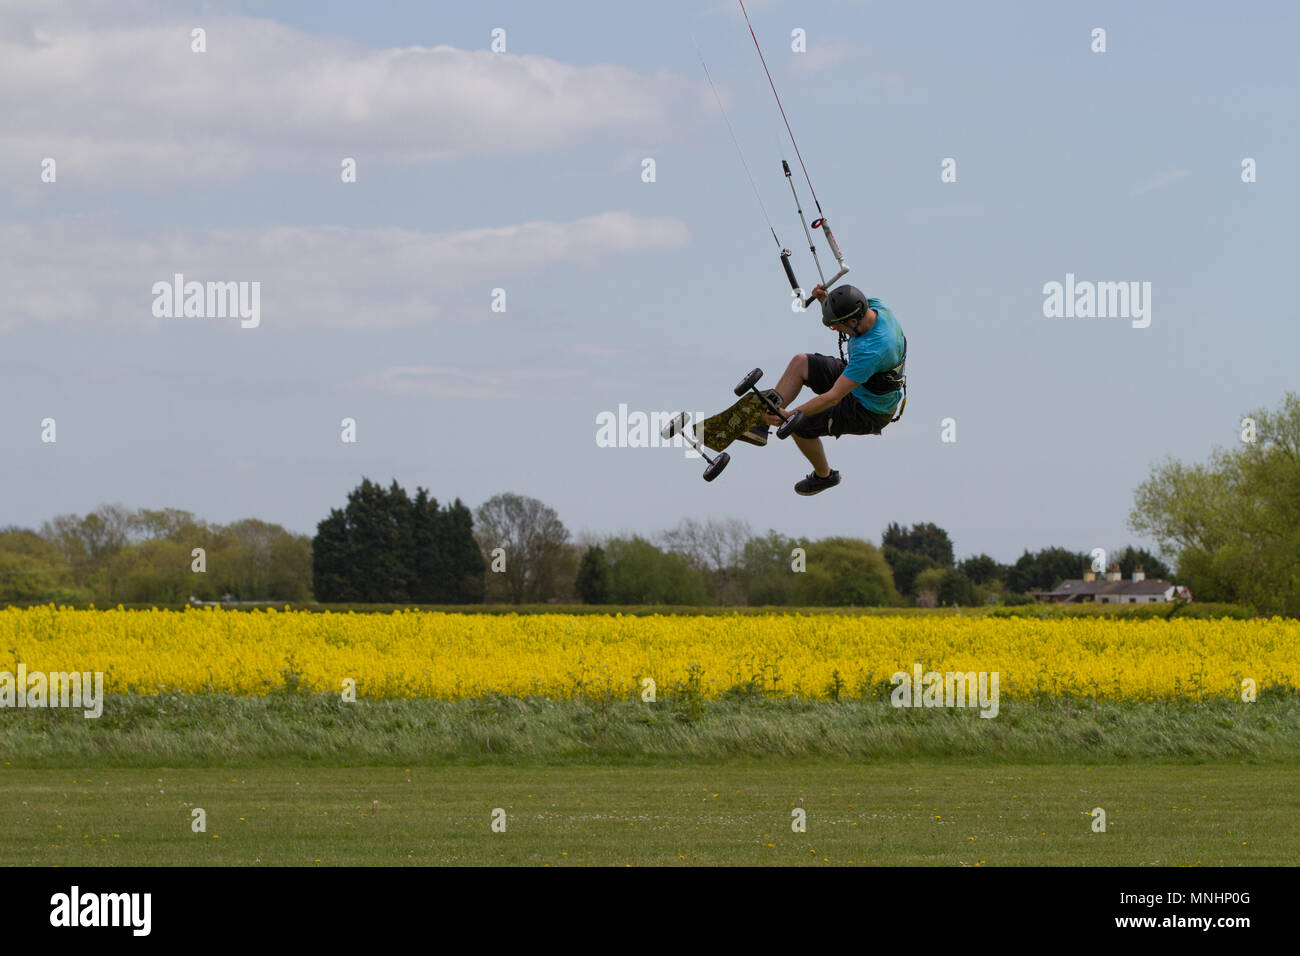 Extreme sport kite landboarding in Essex, UK. Airborne over a field. Stock Photo